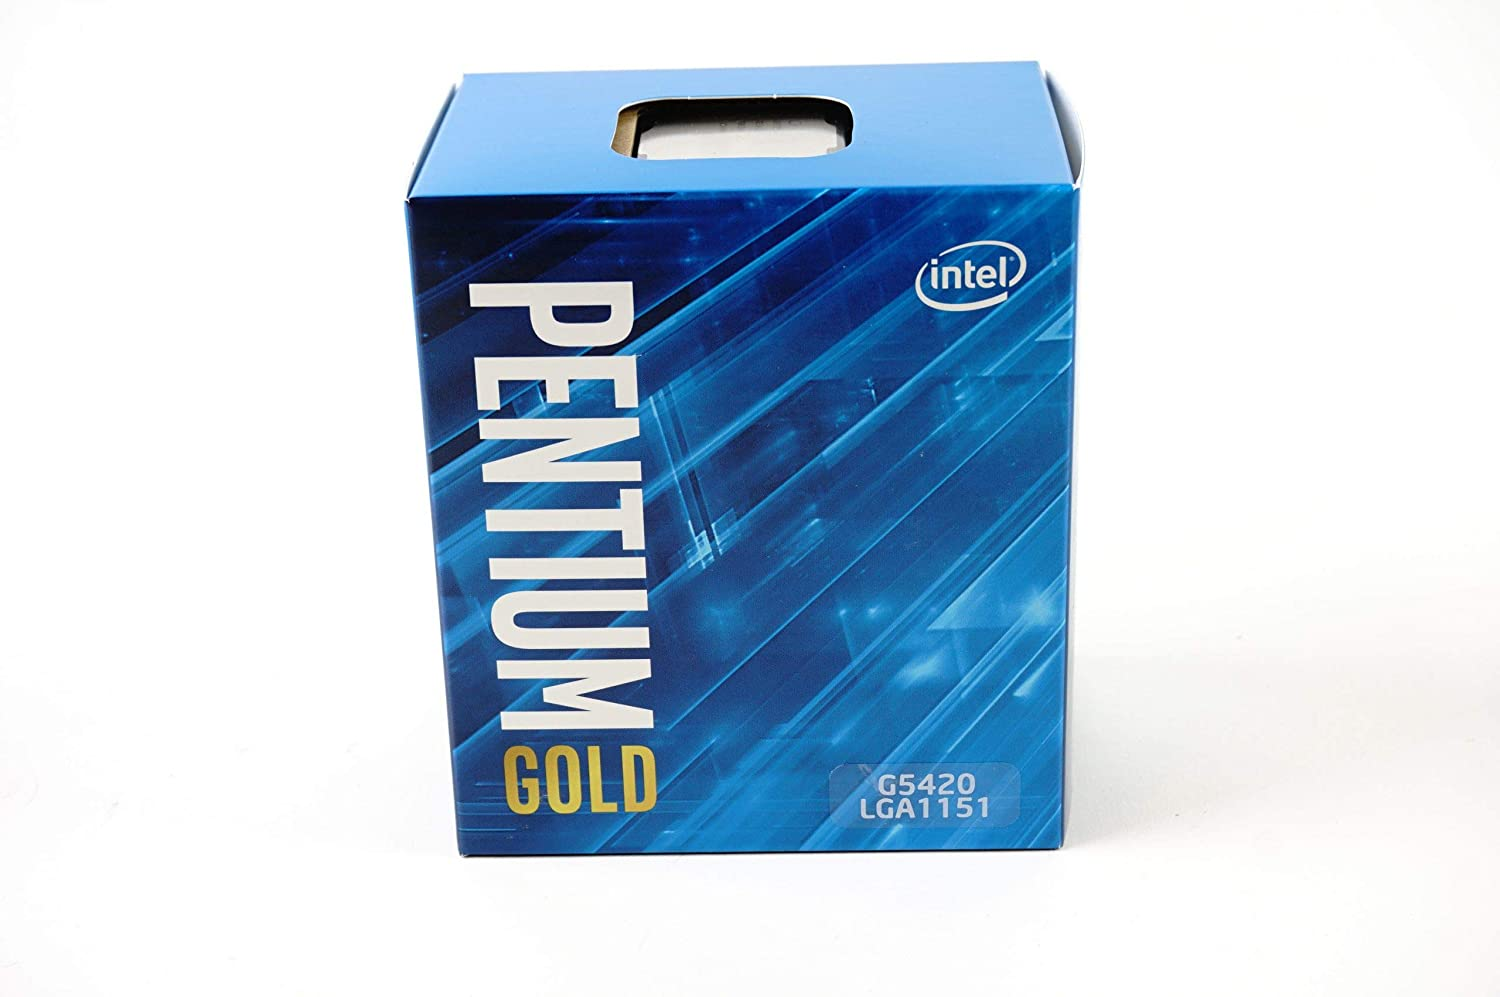 Intel Core G5420 Coffee lake